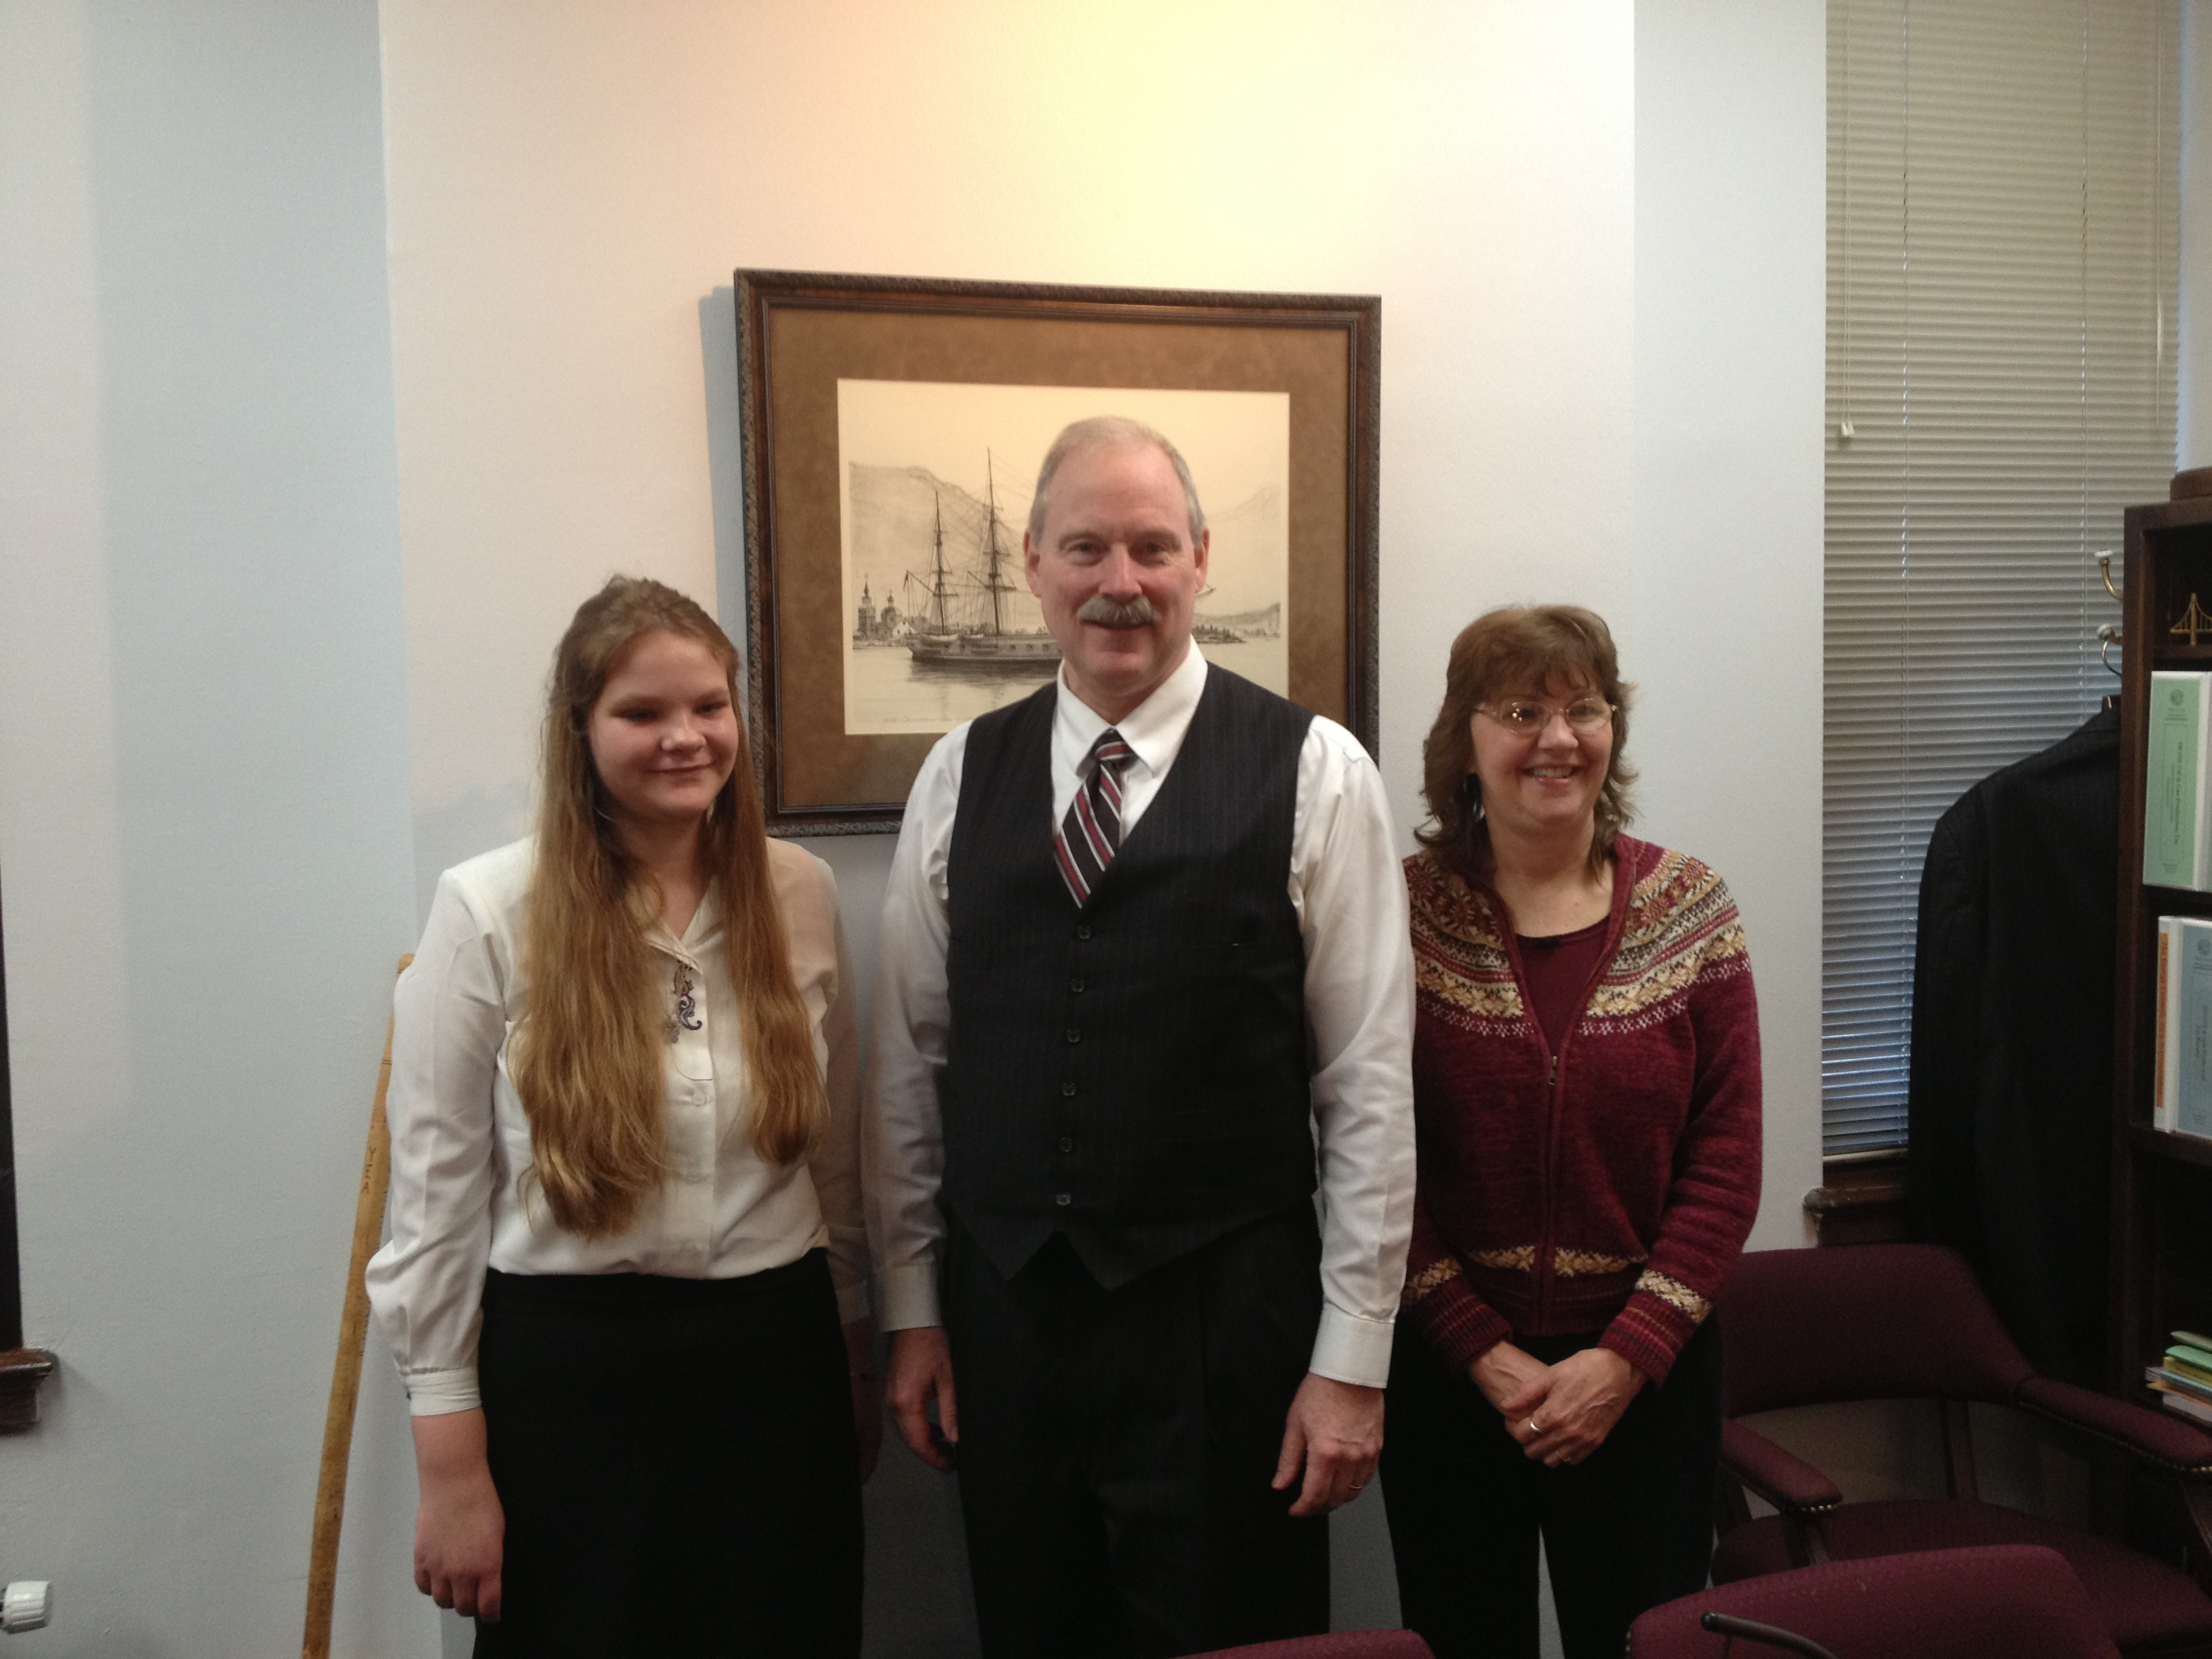 Naukati constituents Jessica Petty (L) and Candy Hemple (R) visit Sen. Stedman